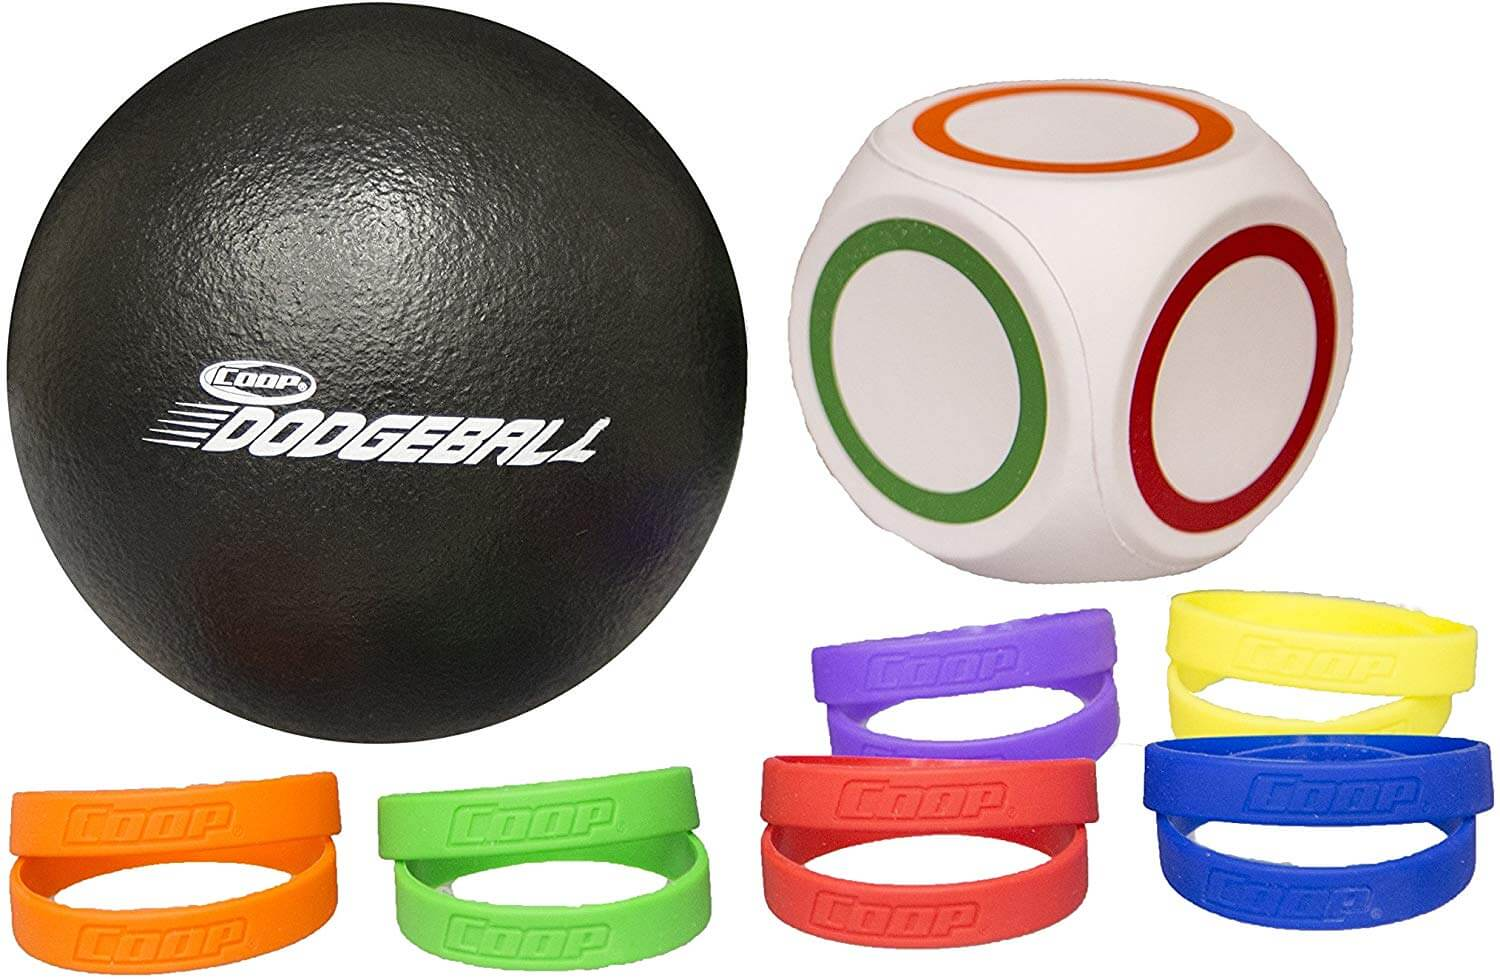 fun-dodgeball-toy-game